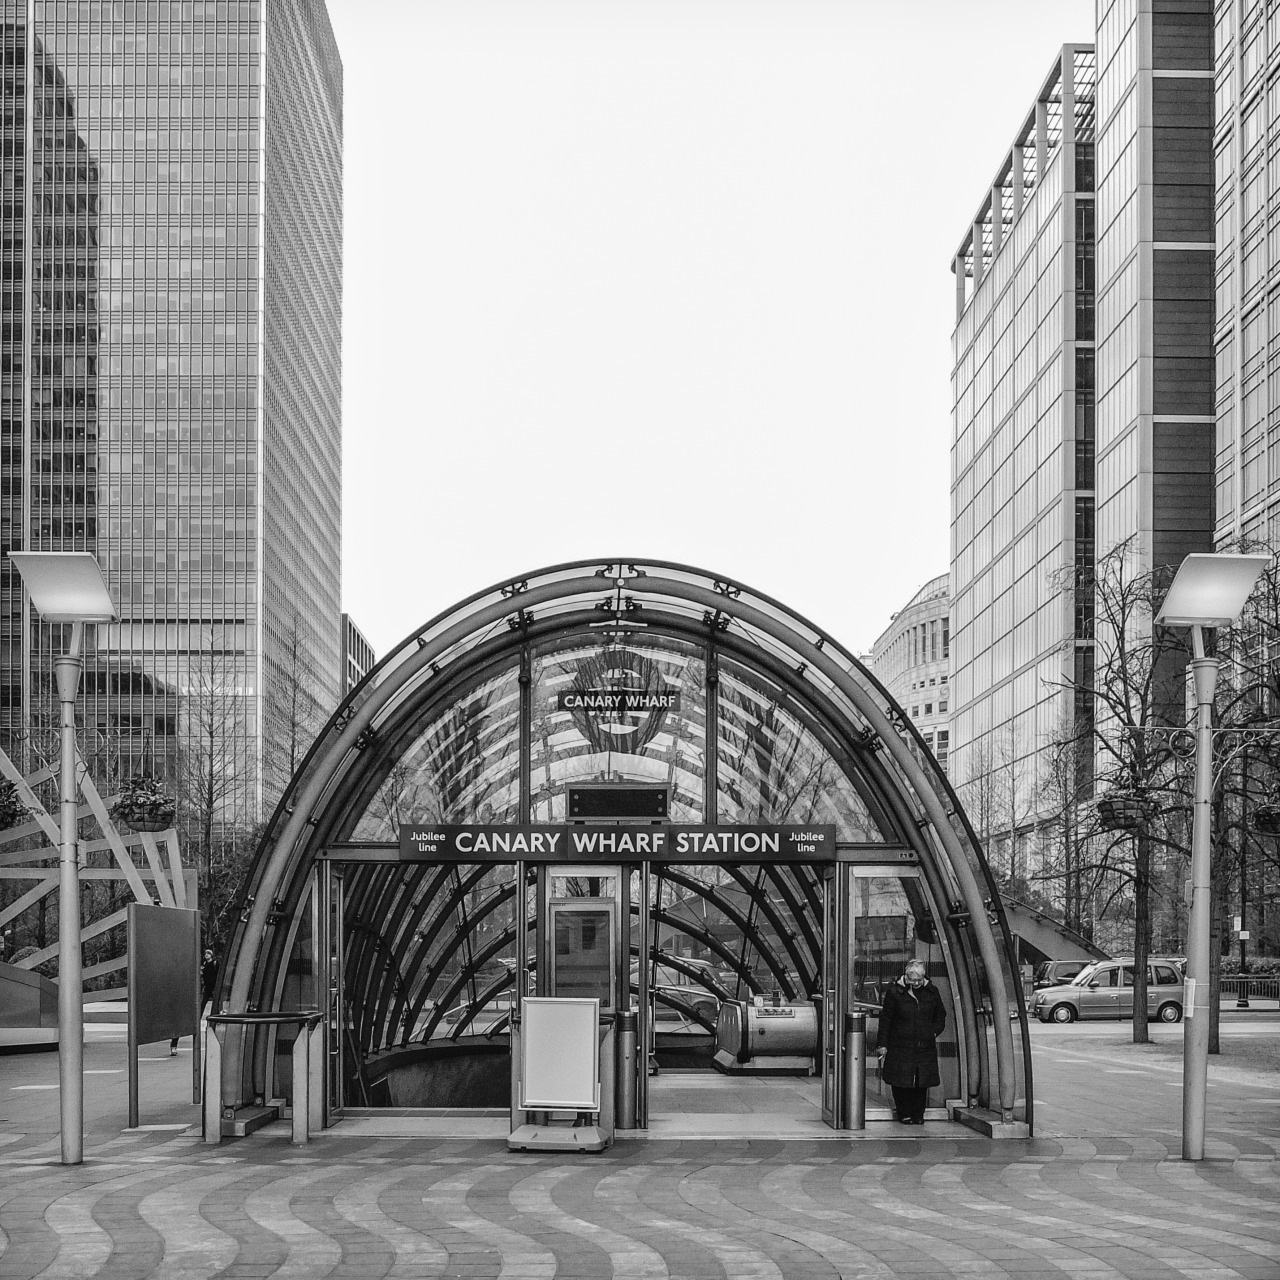 Railway Architecture #1 Canary Wharf Underground Station, London by Foster & Partners, 1999